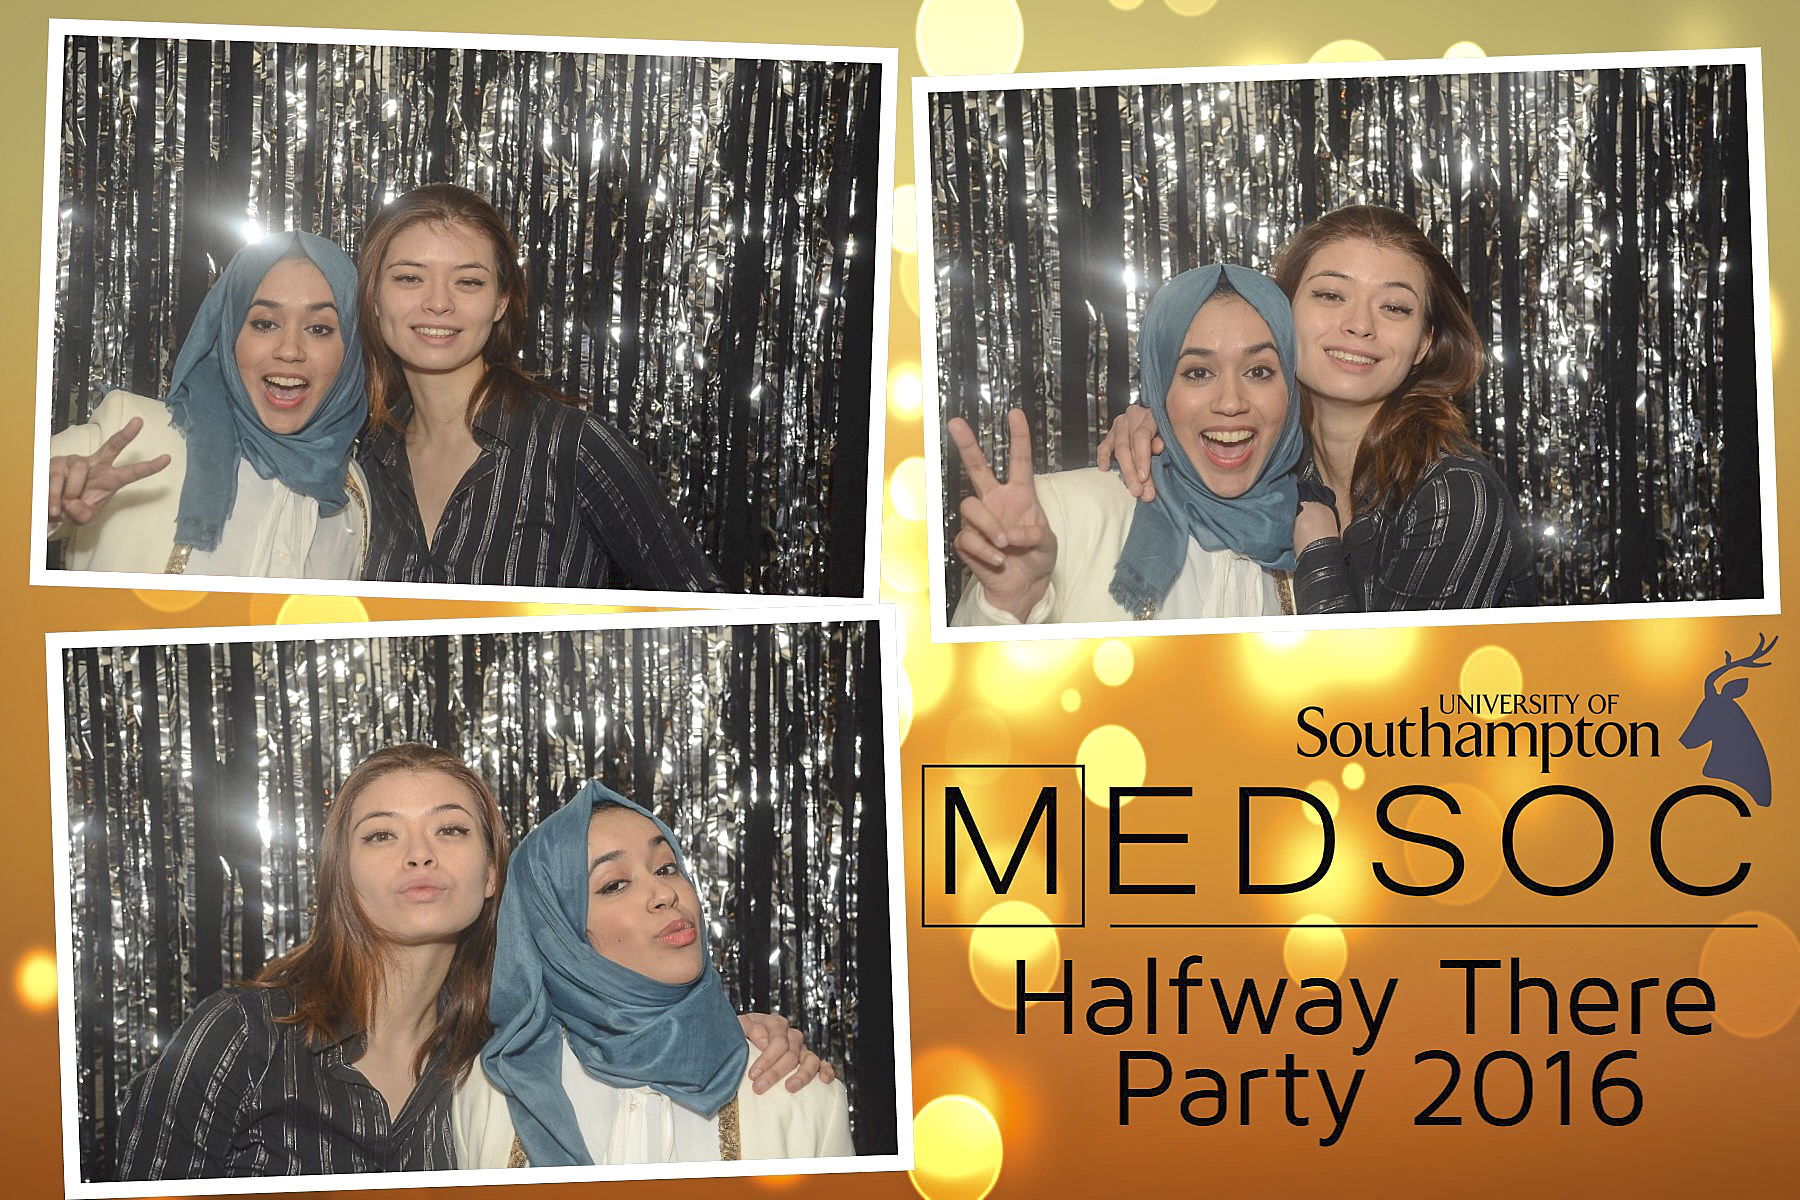 MedSoc Halfway There Party 2016 DS231434.jpg